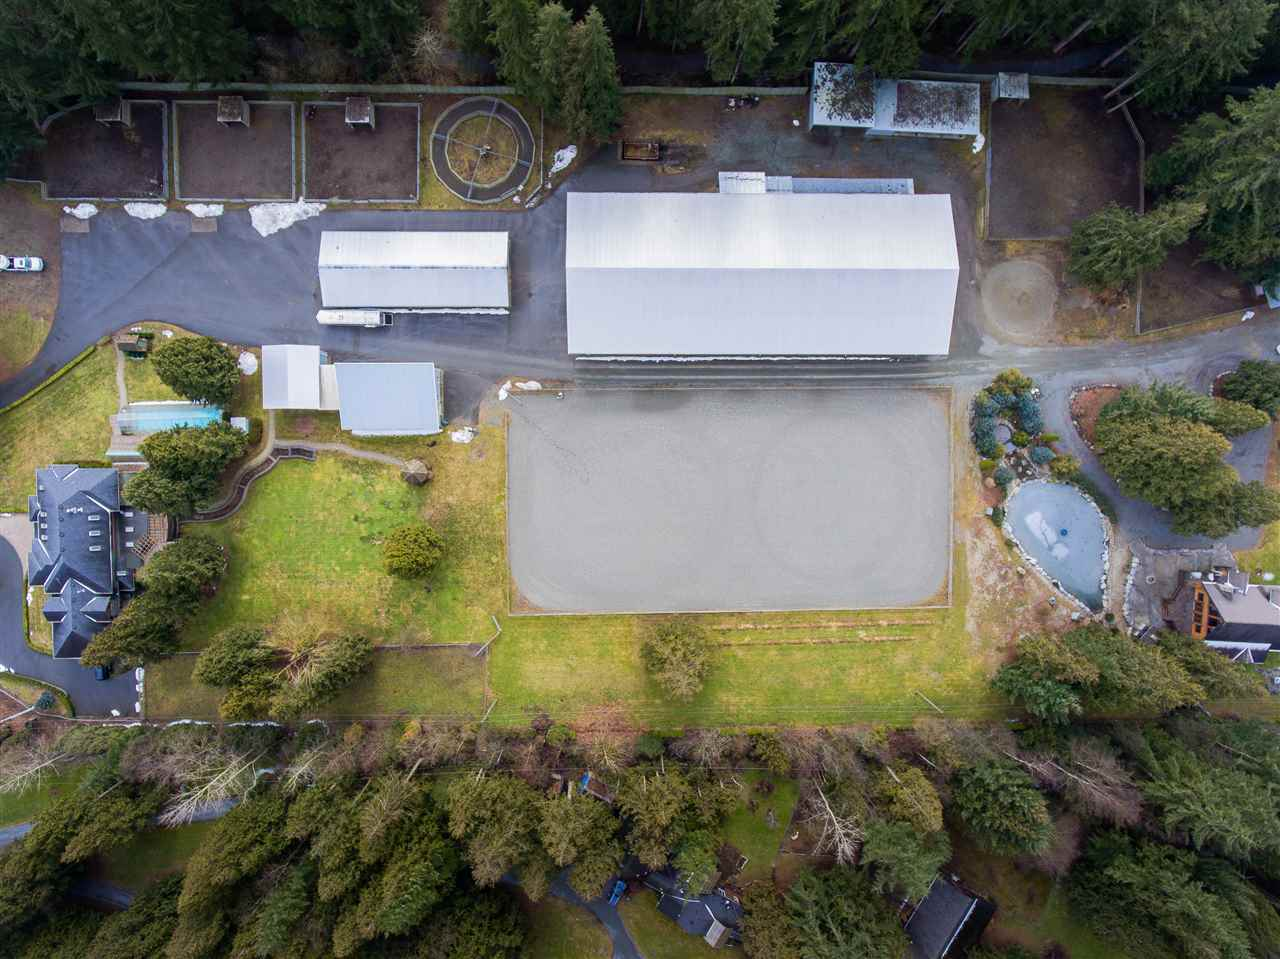 "Photo 3: 447 232 Street in Langley: Campbell Valley House for sale in ""CAMPBELL VALLEY"" : MLS(r) # R2139190"